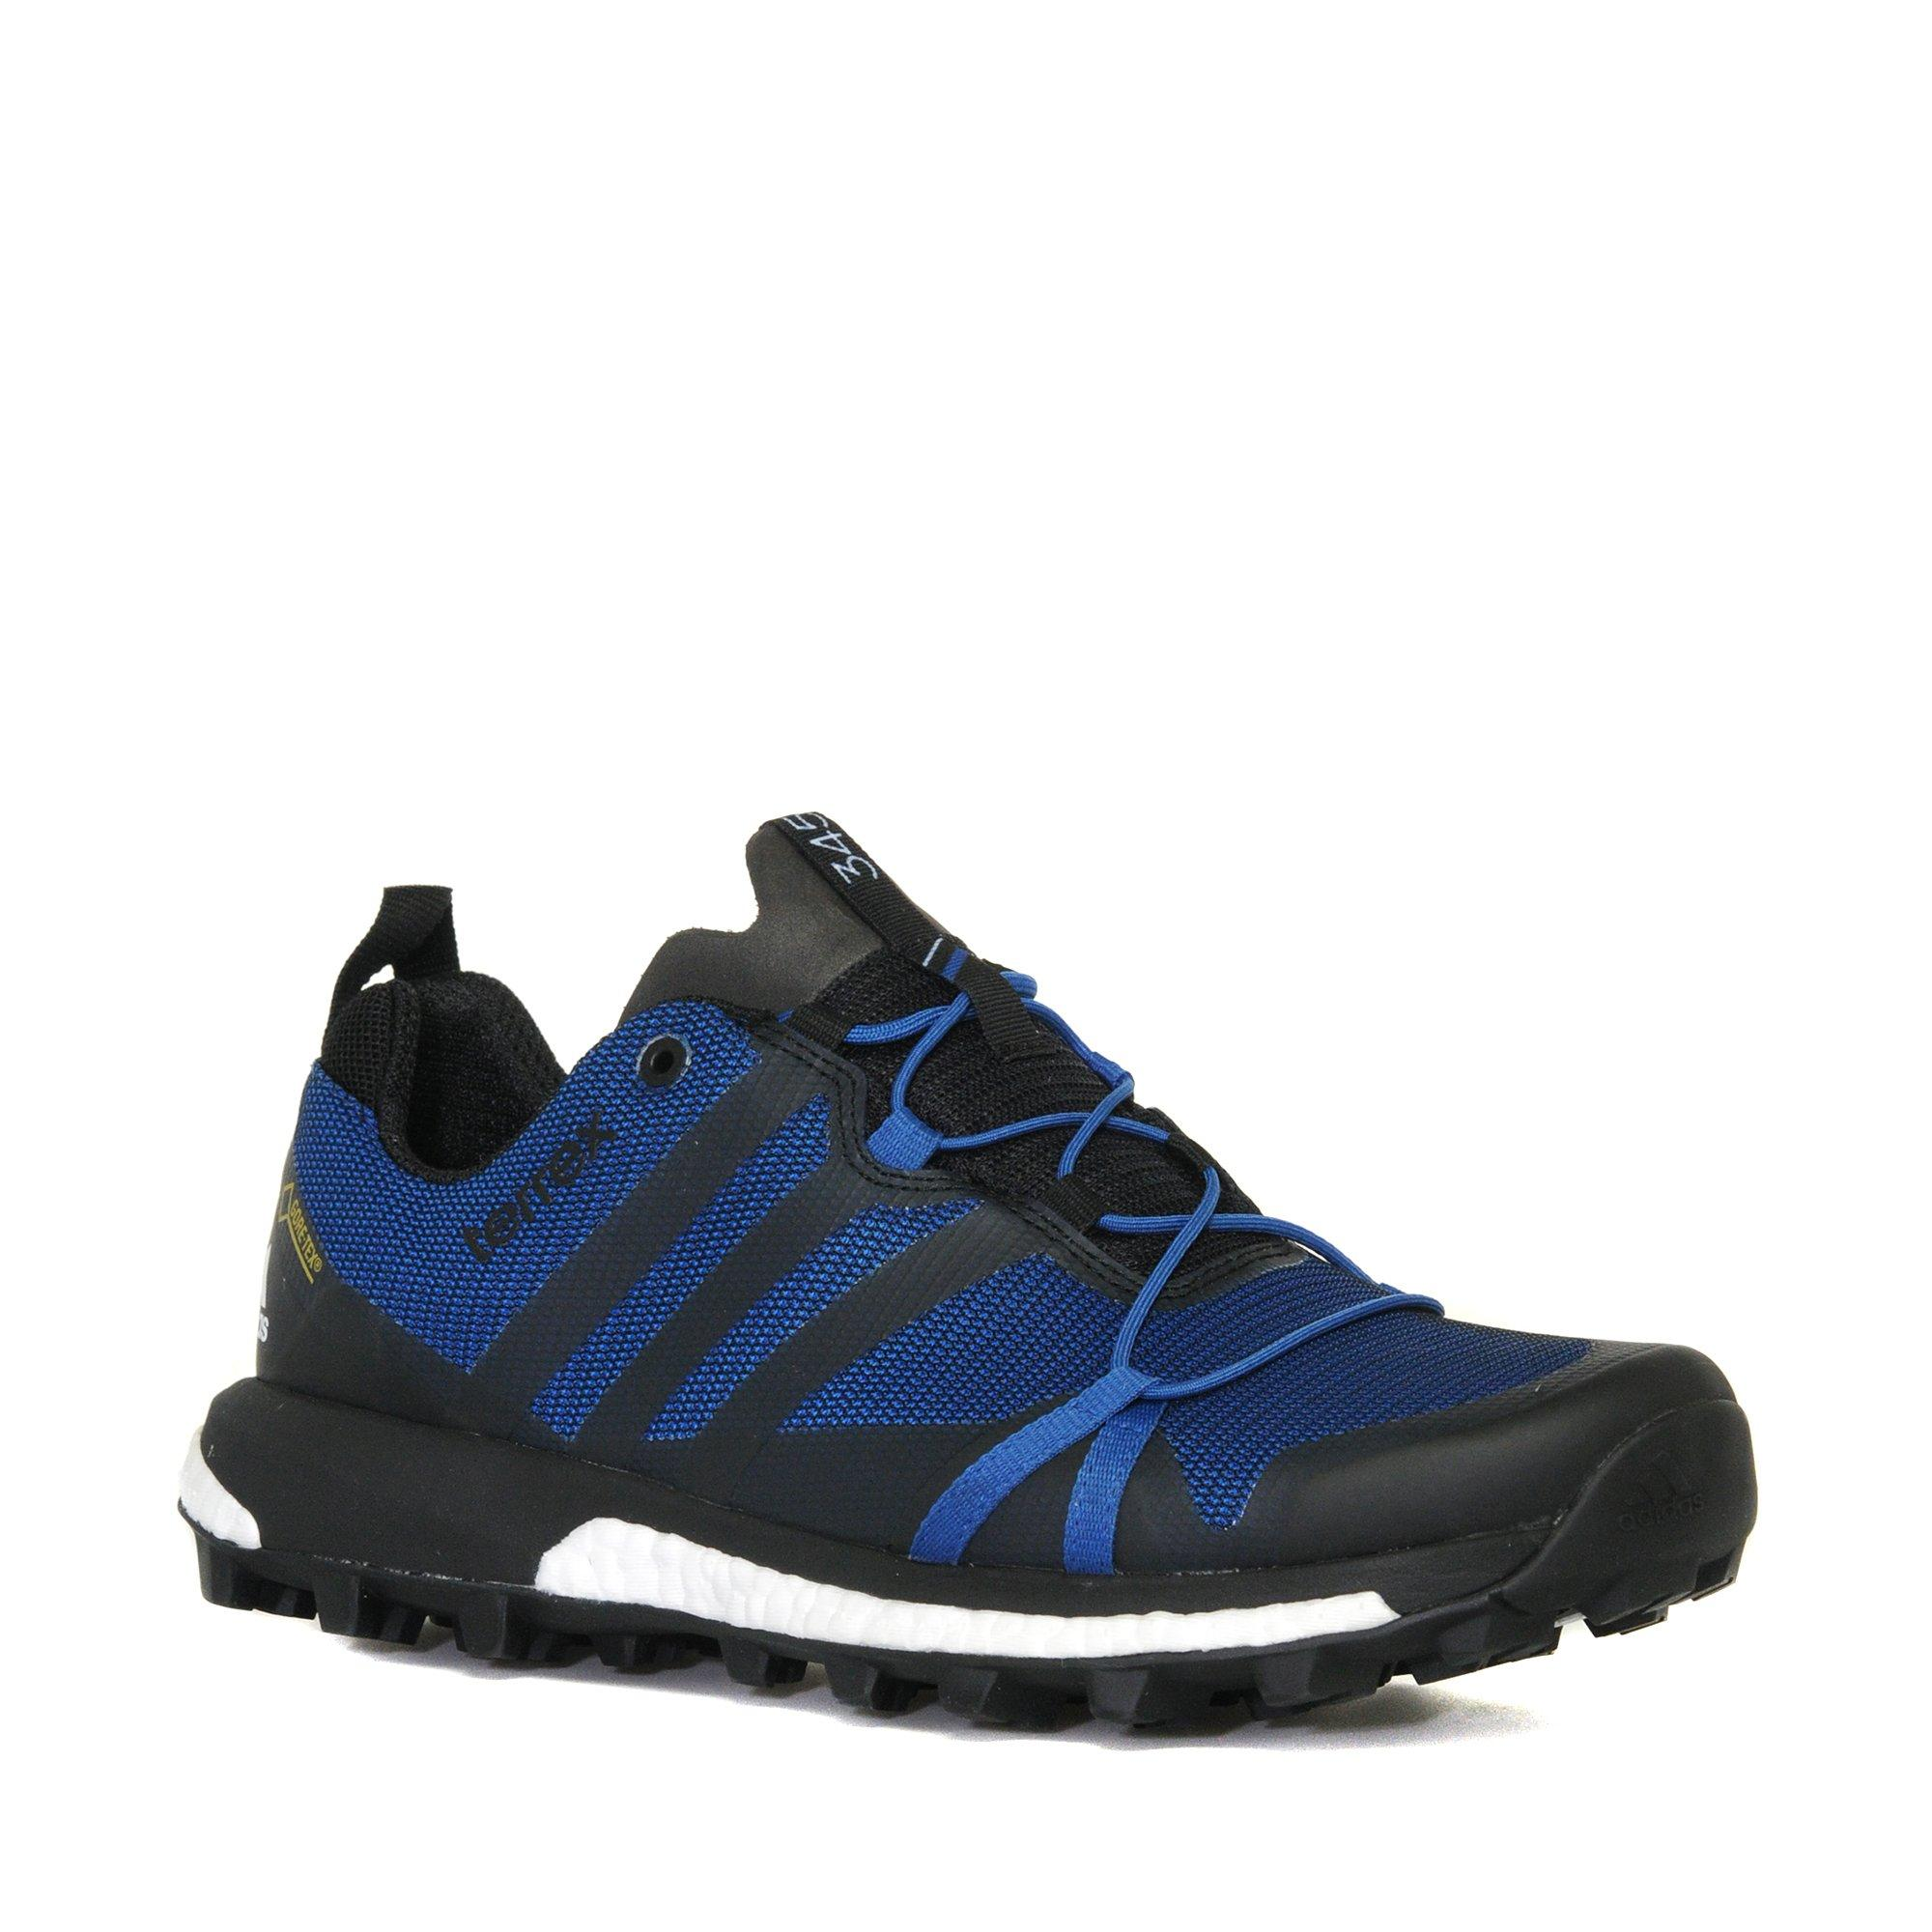 adidas gore tex shoes prices